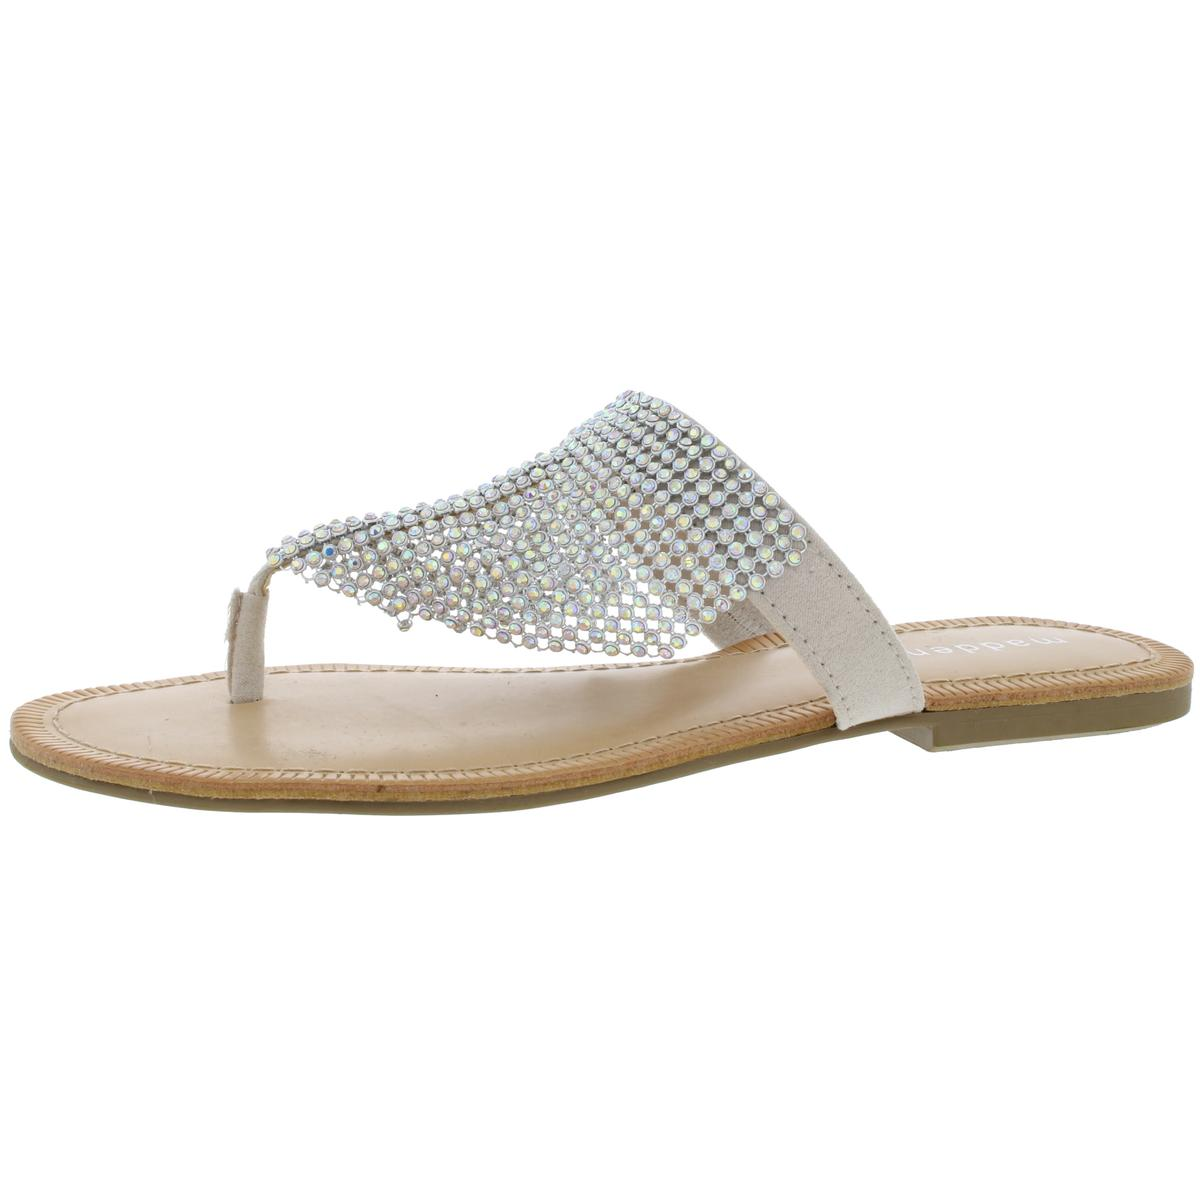 013e74152bf Details about Madden Girl Womens Sabeer Silver Thong Sandals Shoes 5.5  Medium (B